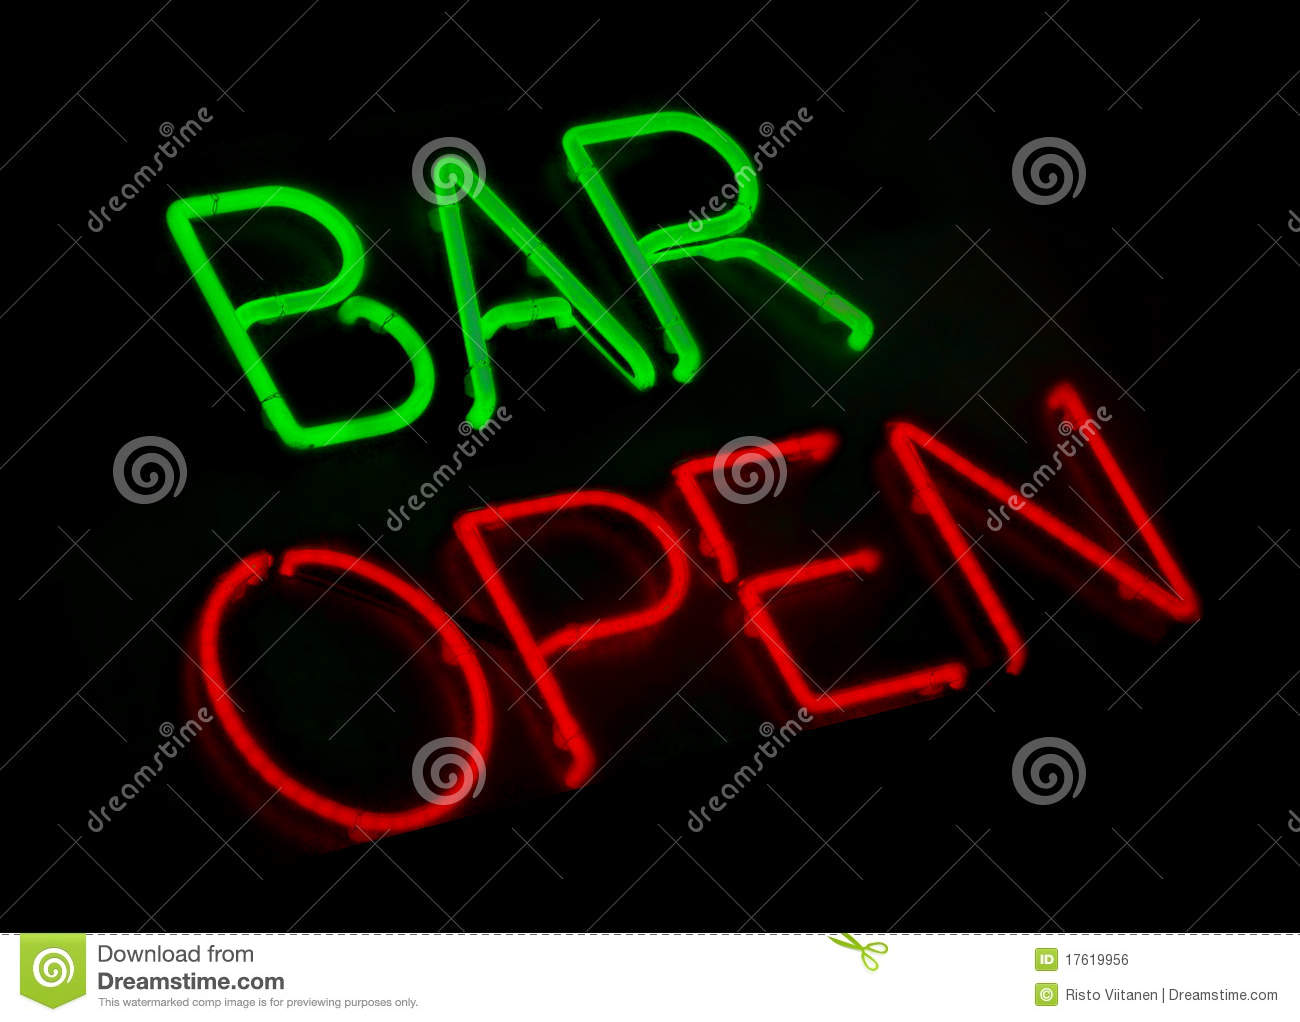 Bar open neon sign stock photo. Image of advertise, closed